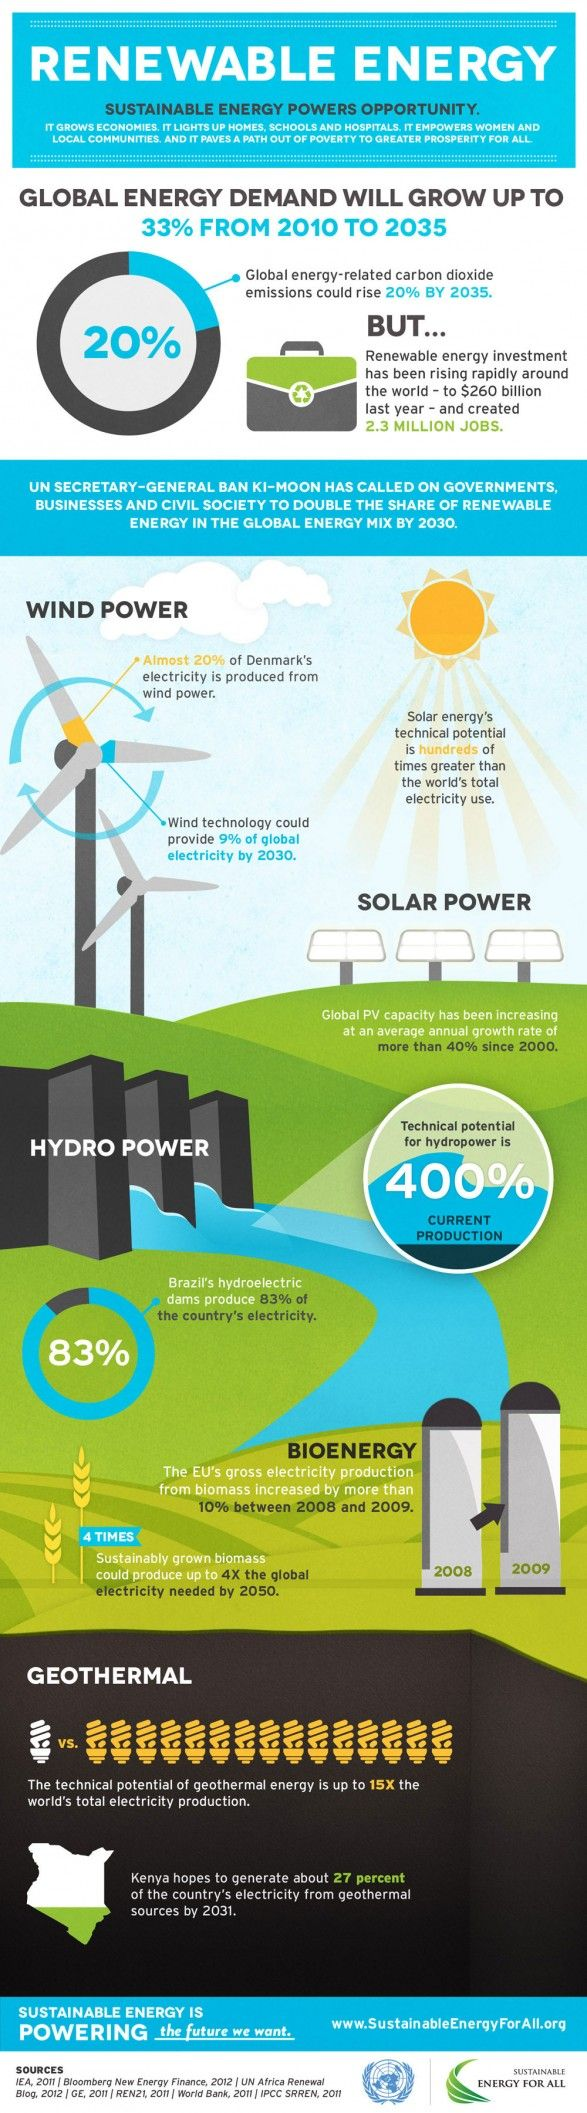 INFOGRAPHIC: Renewable Energy